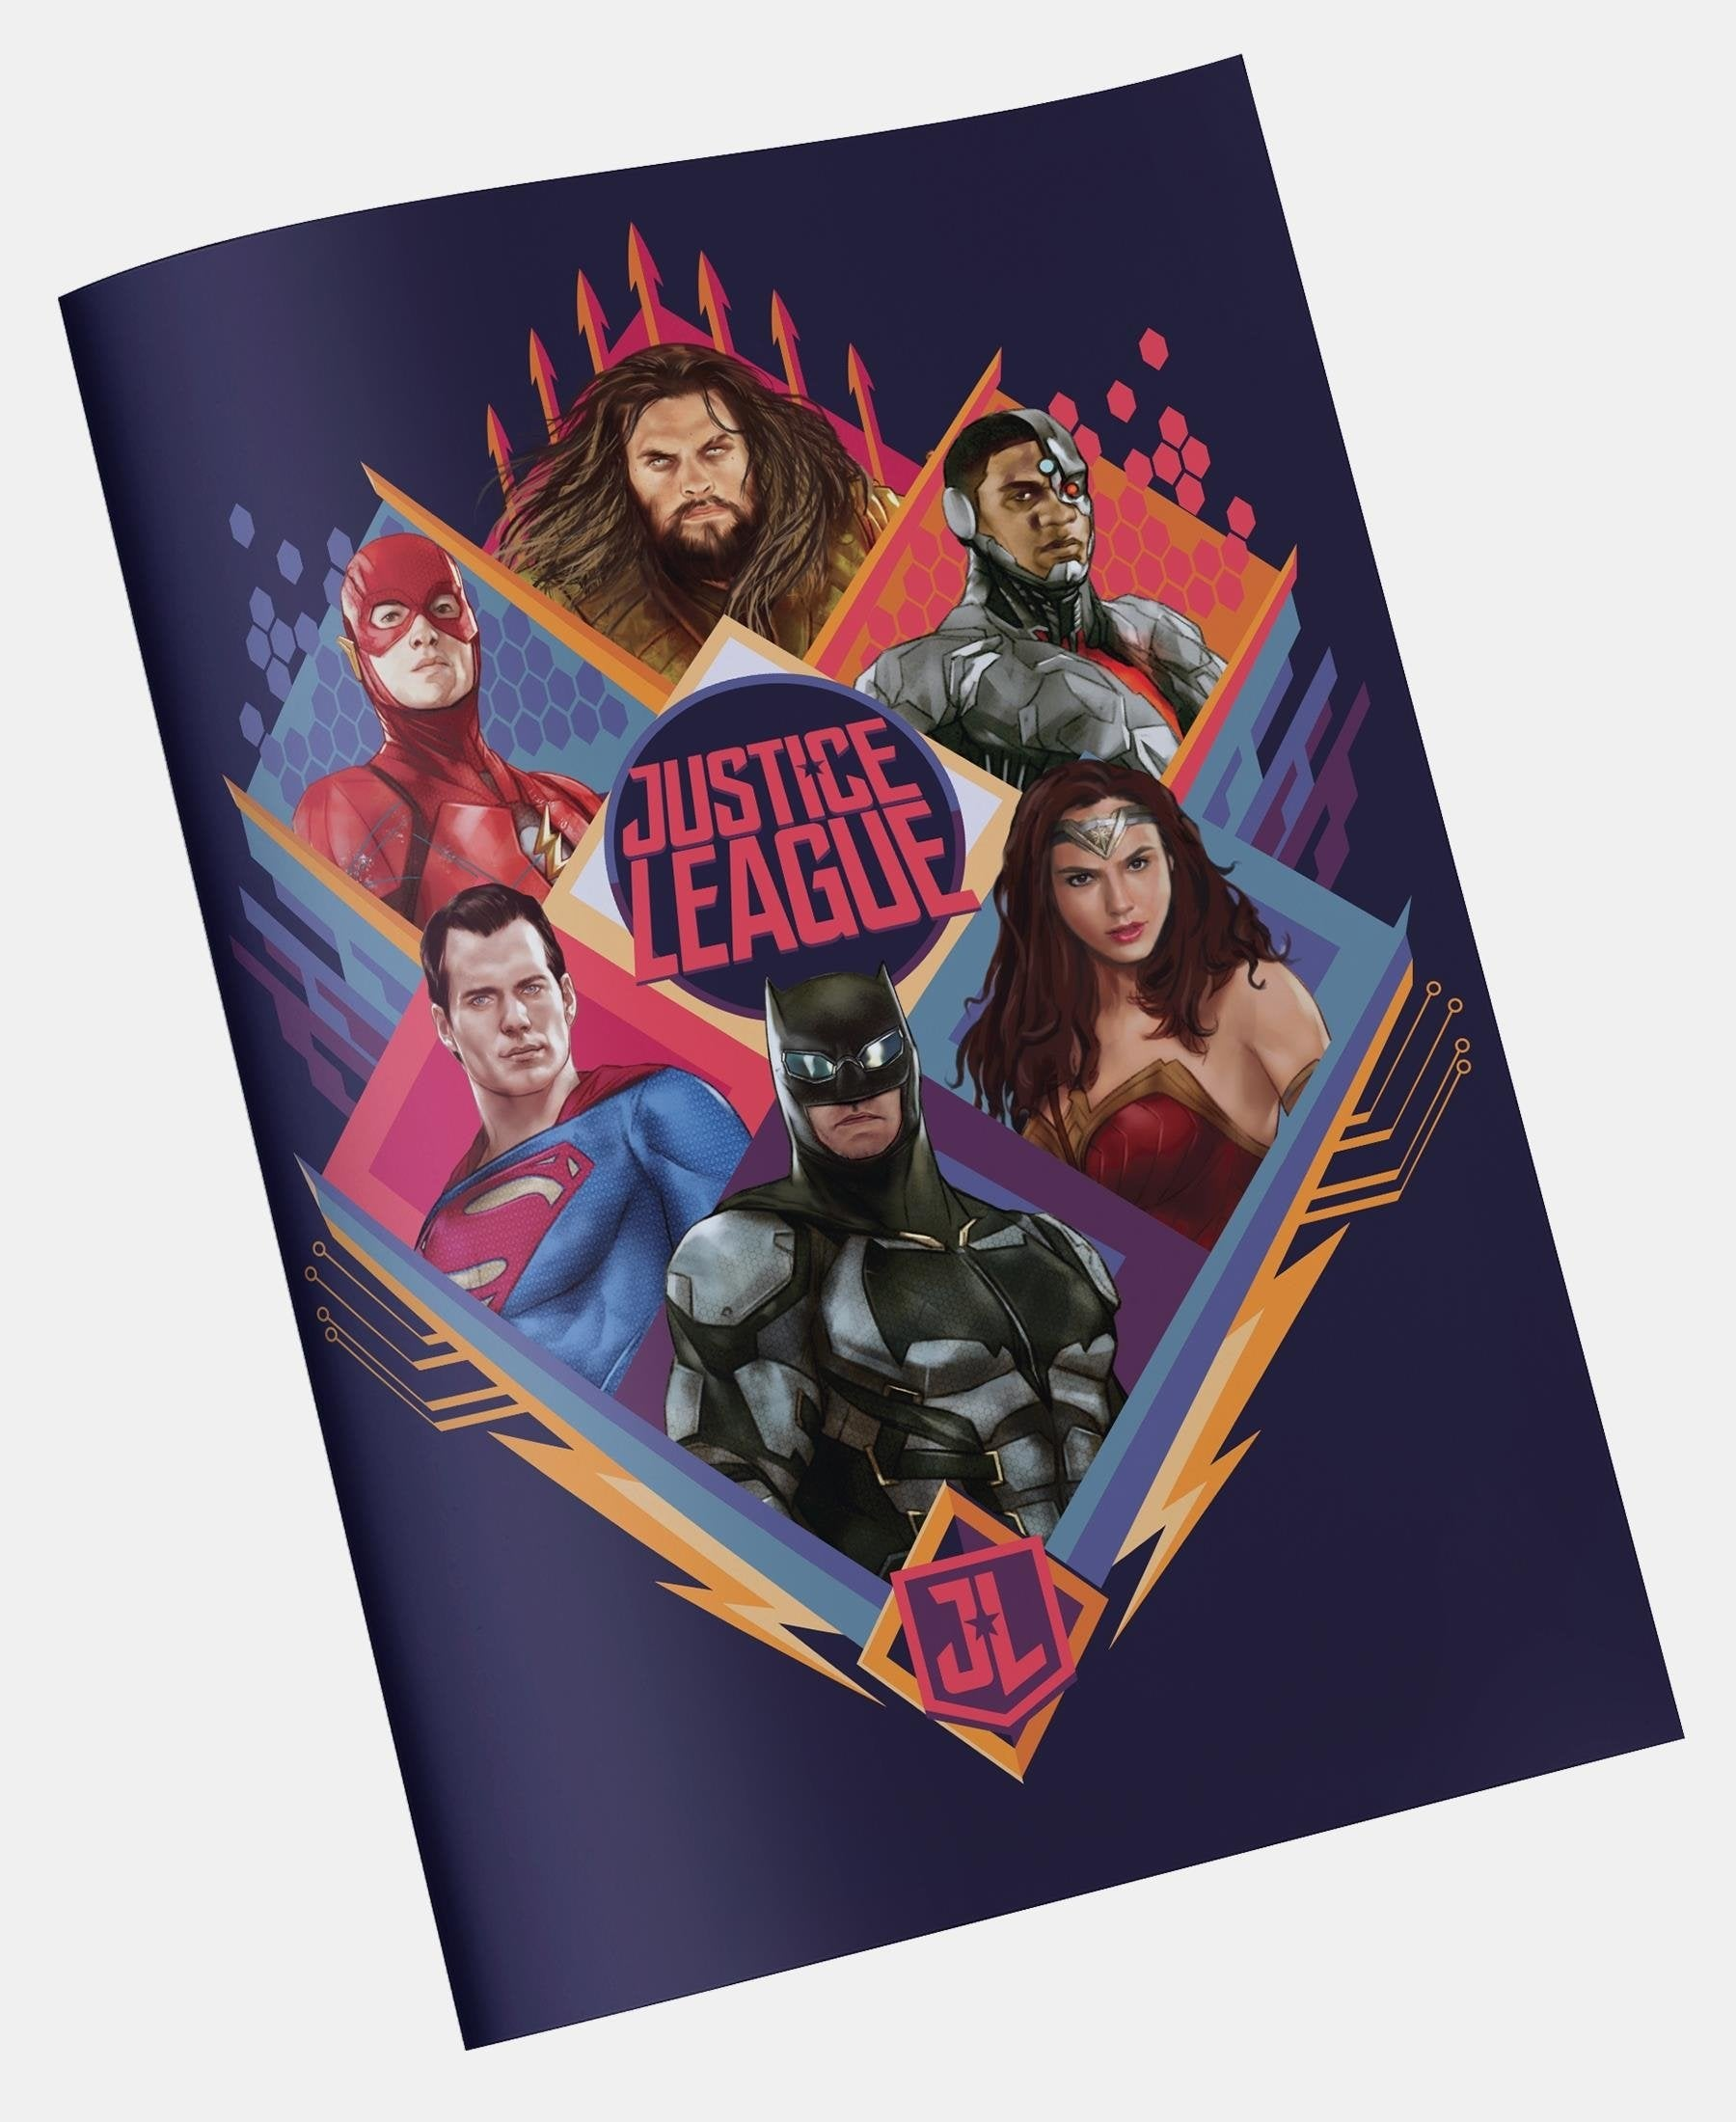 Justice League Precut Book Covers - Navy